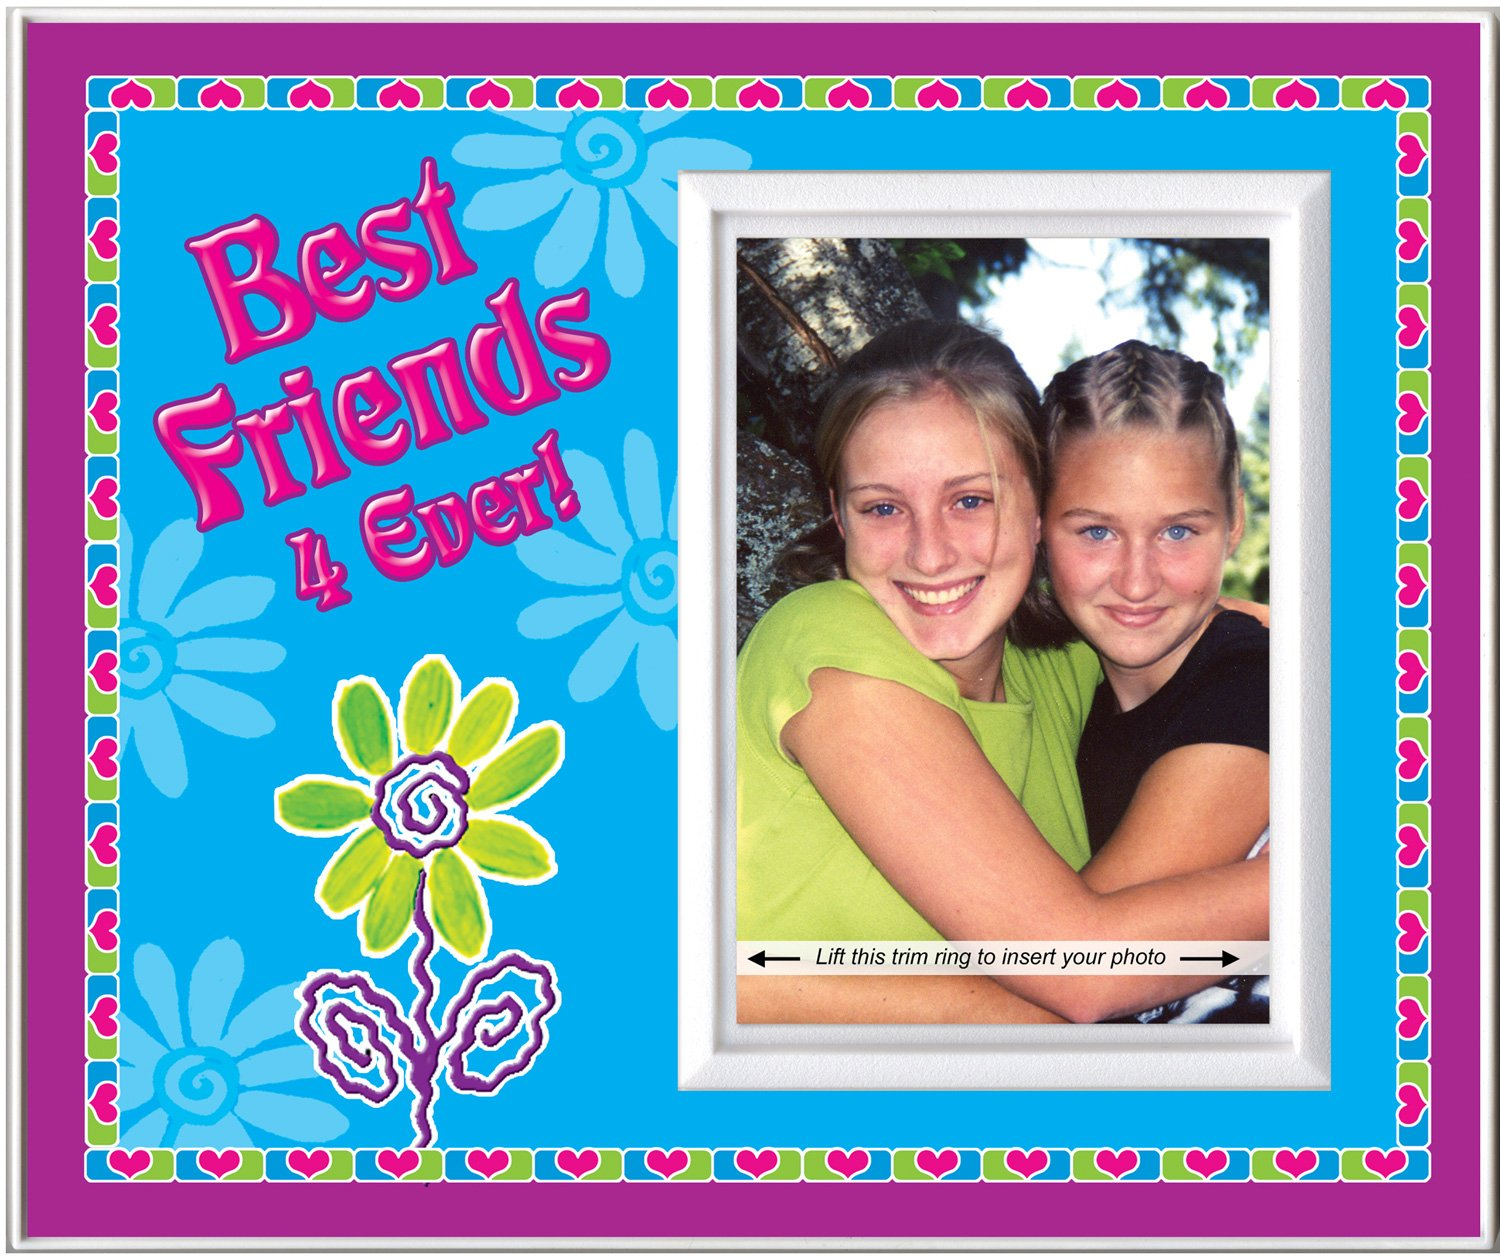 Amazon.com : Best Friends 4 Ever! - Picture Frame Gift : Childrens ...